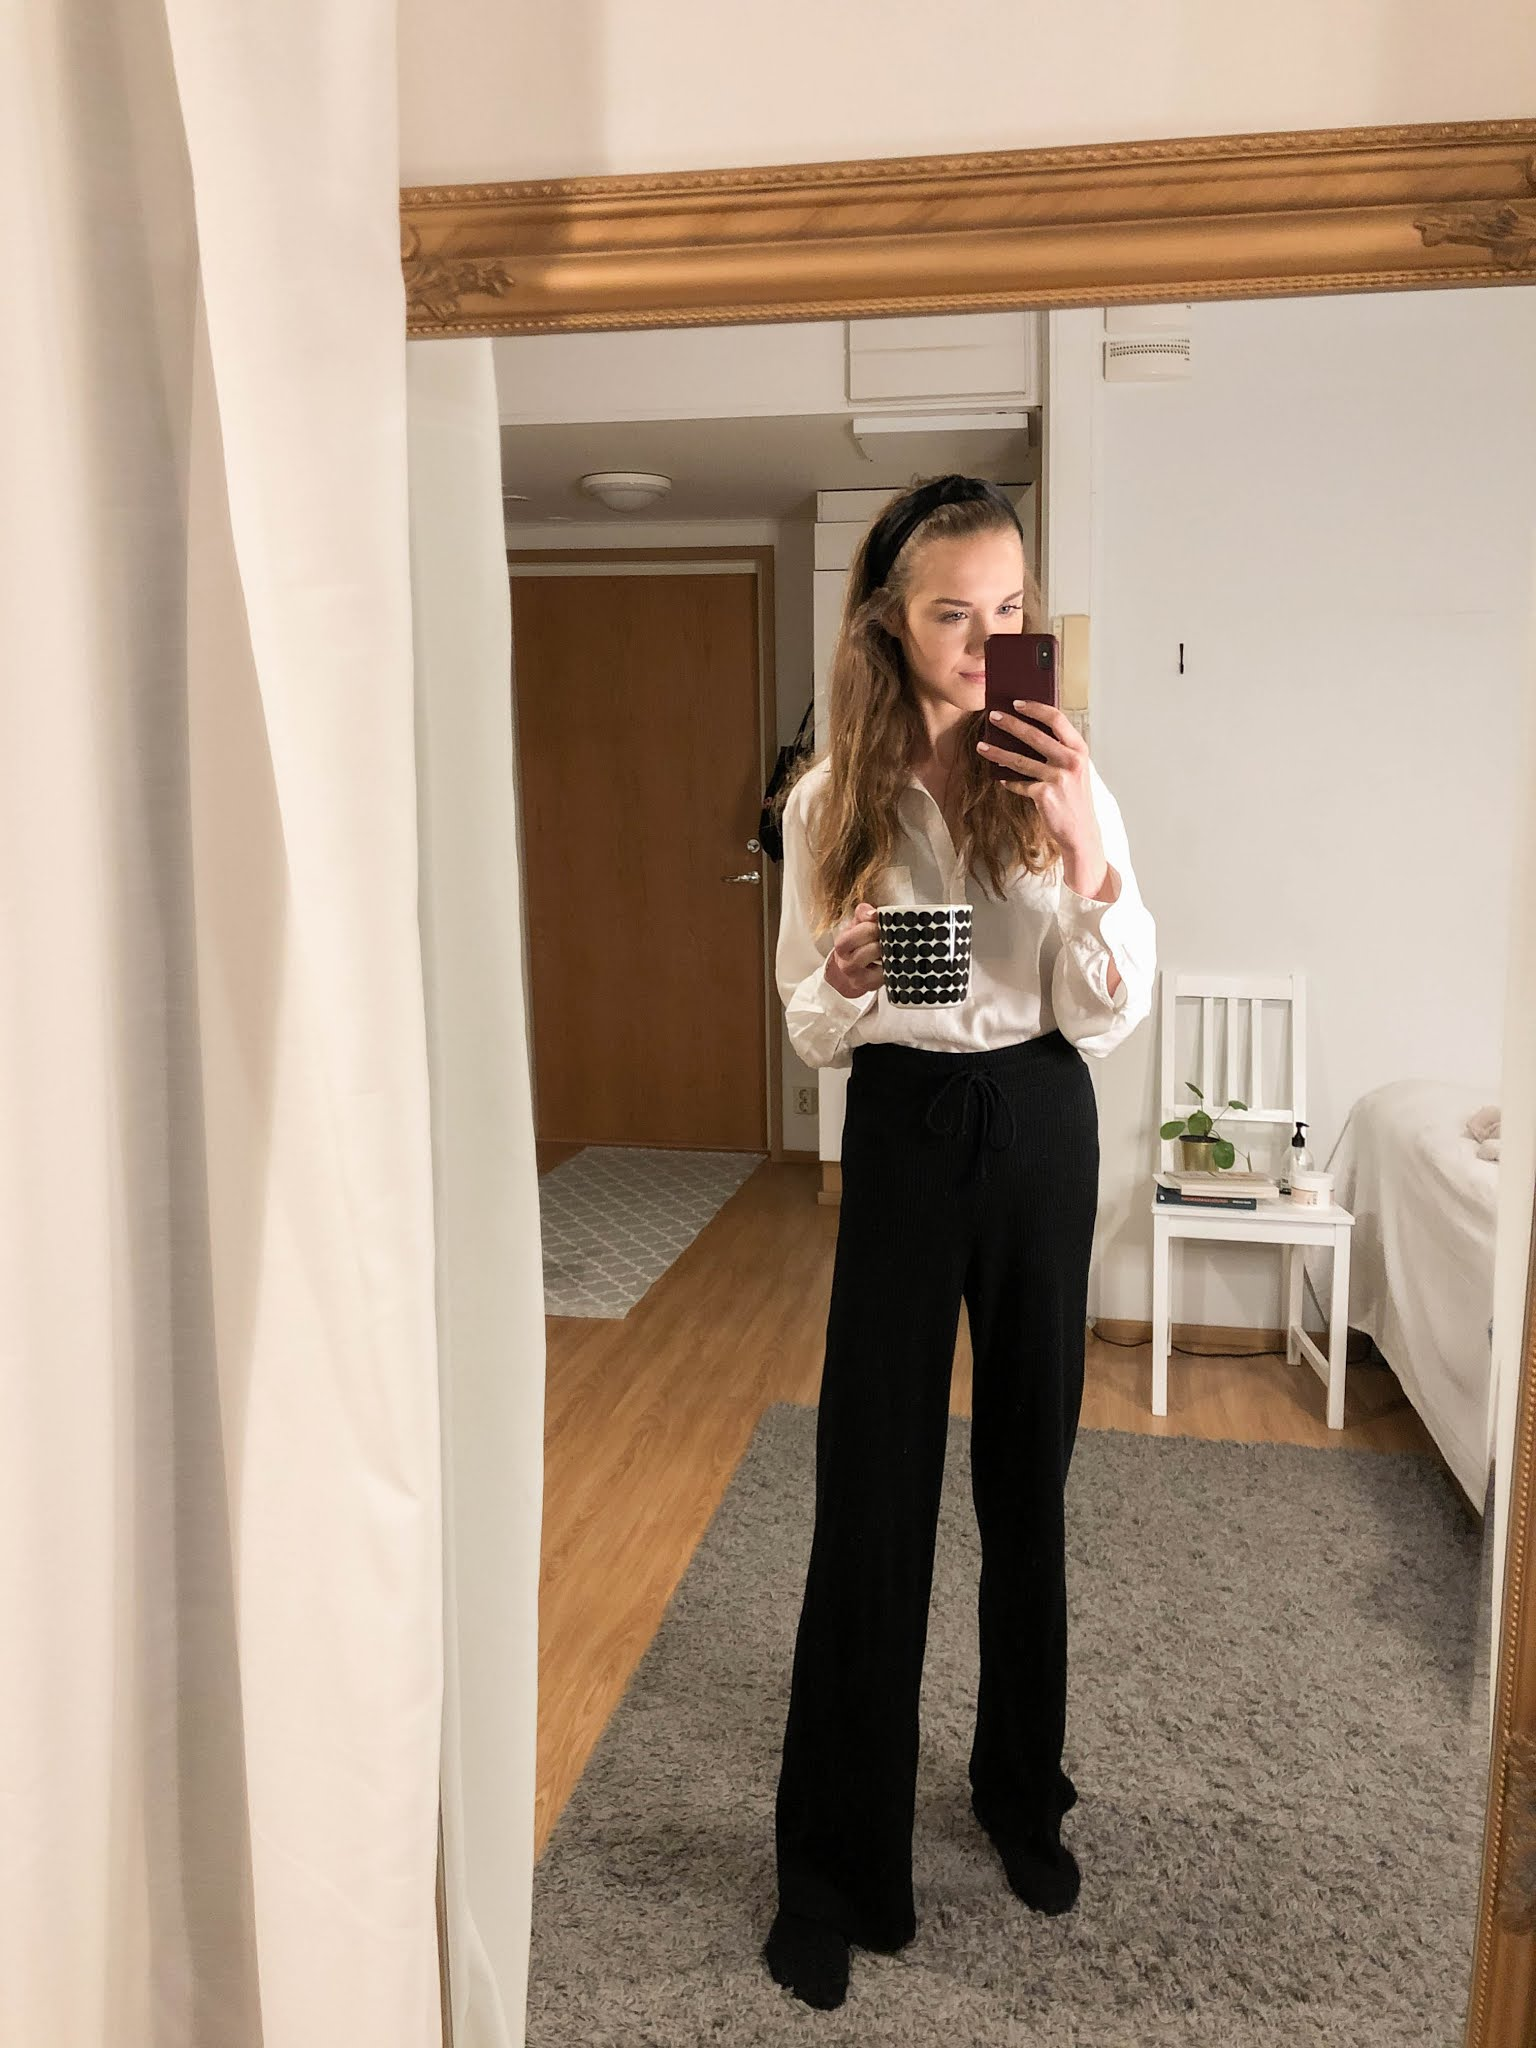 Rento talviasu töihin // Casual winter outfit for work